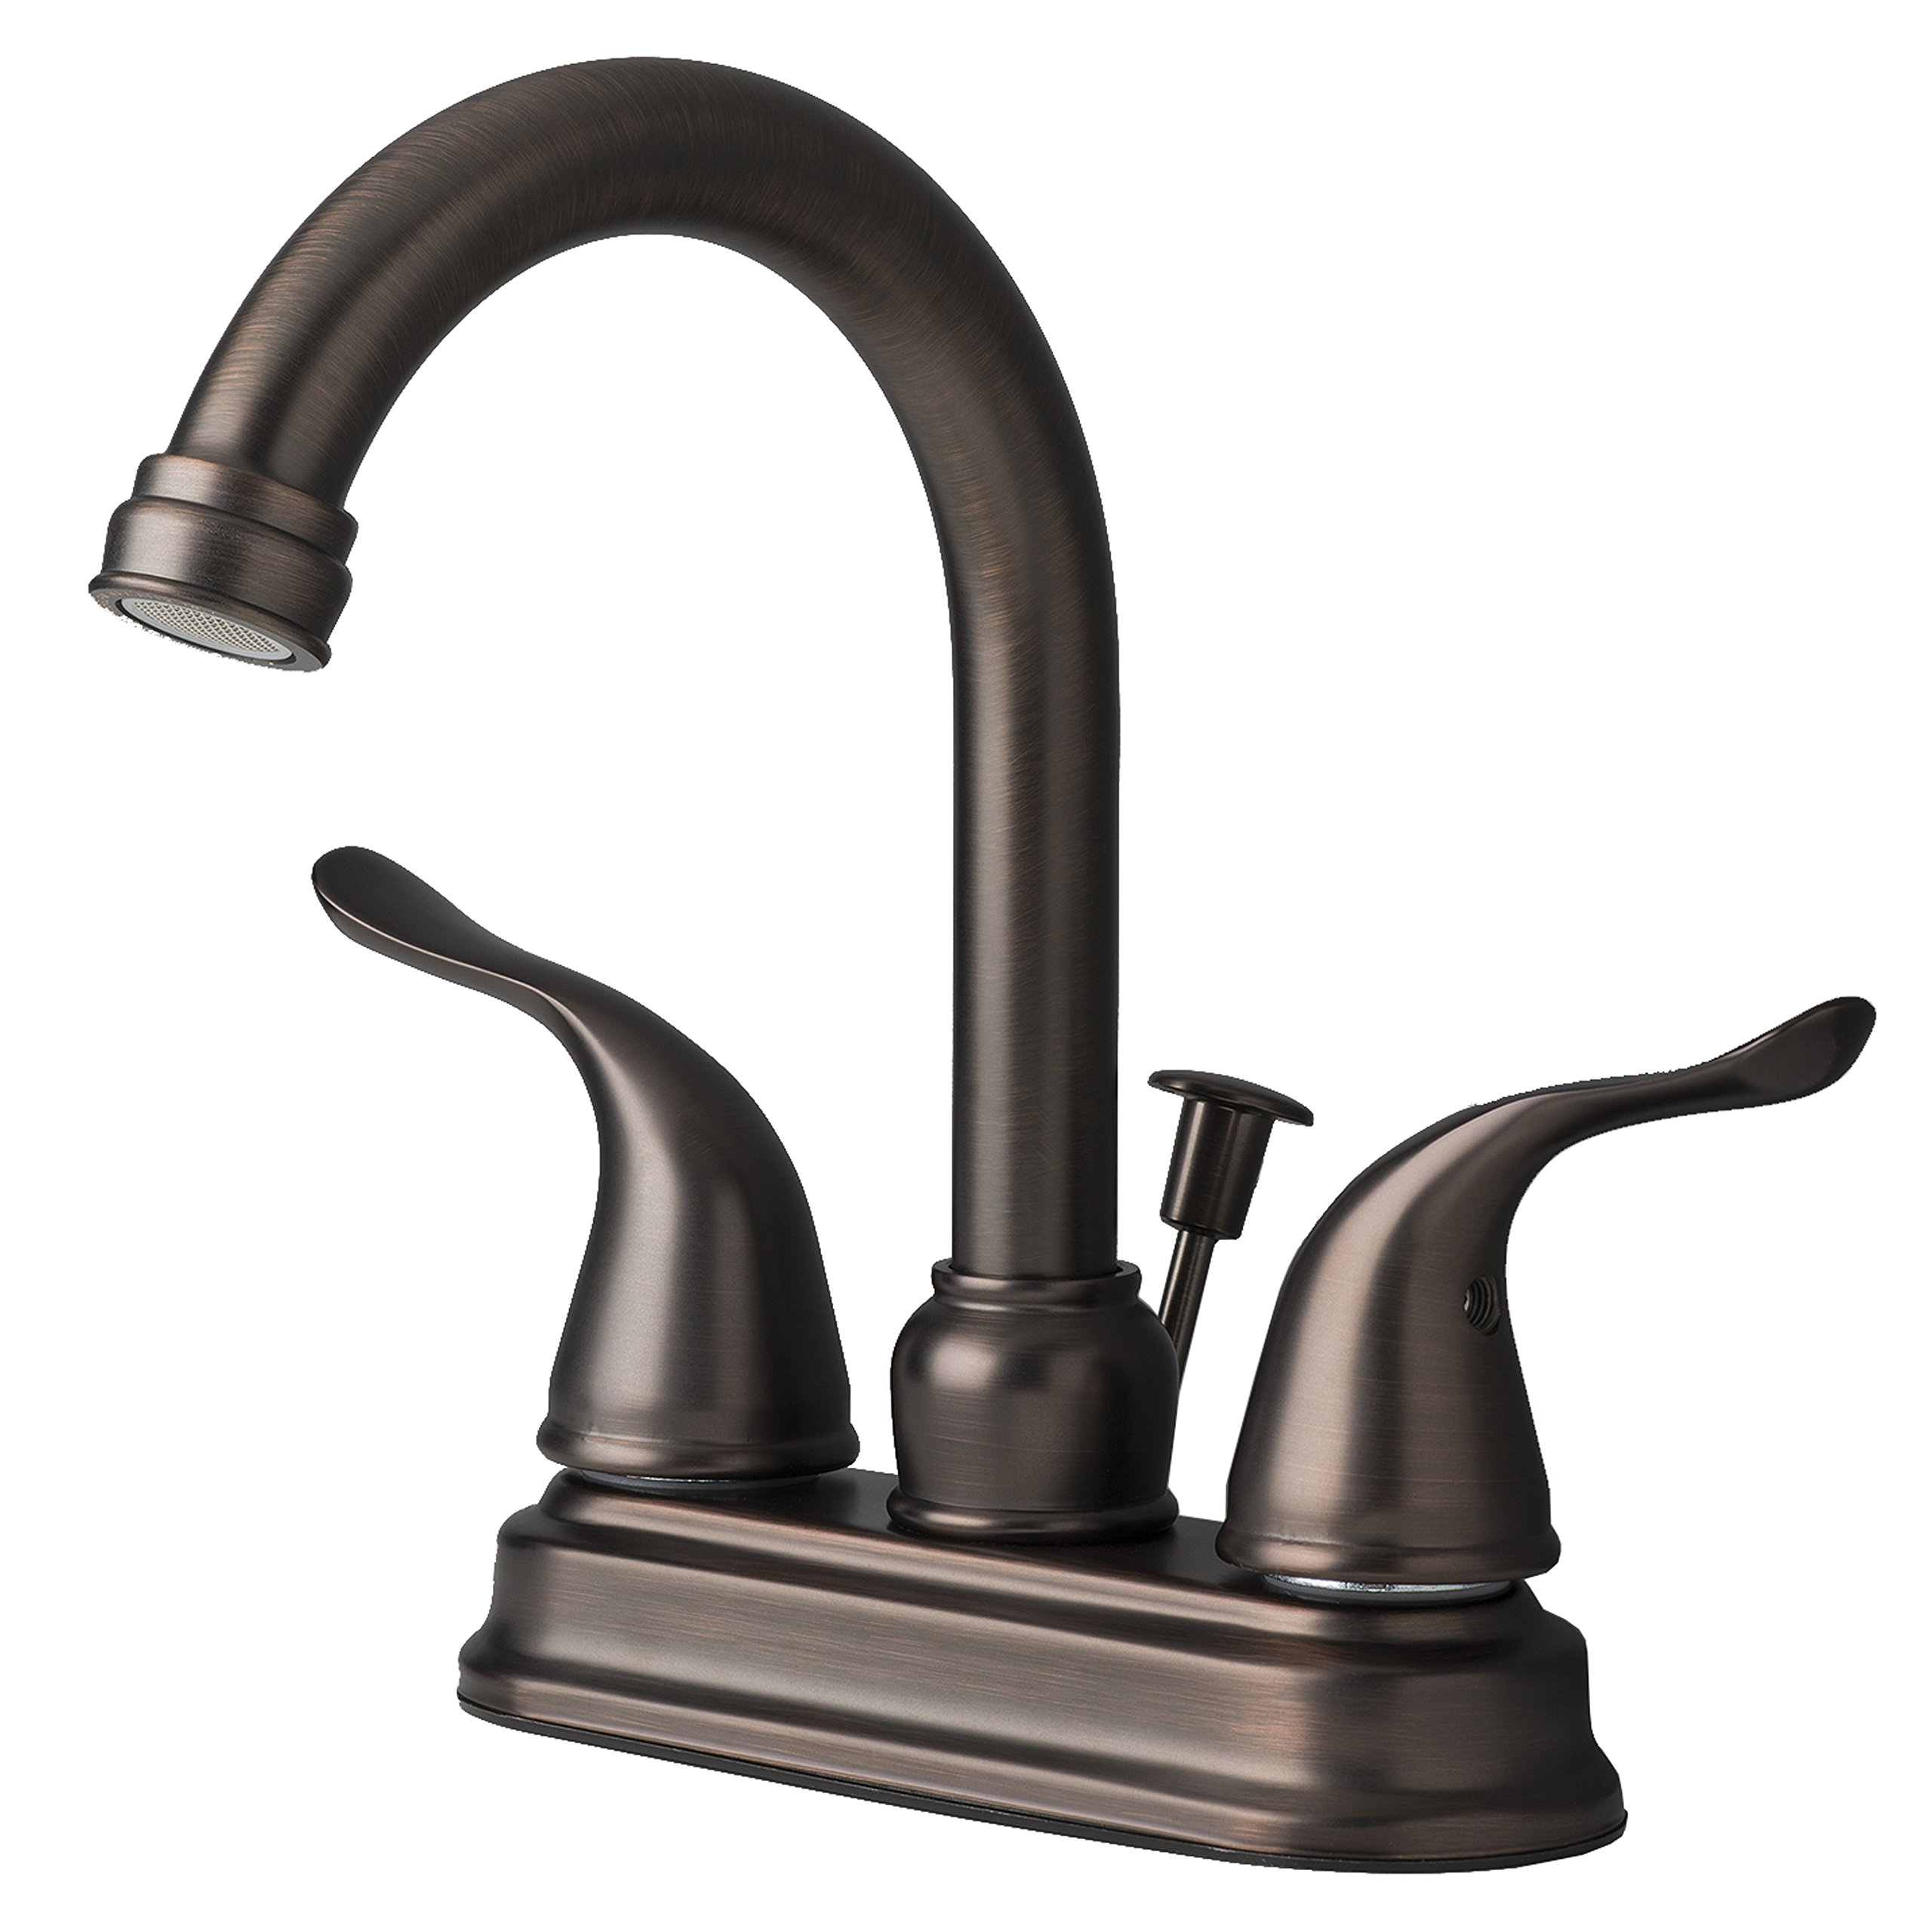 Builders Shoppe 2020BZ Two Handle Centerset Lavatory Faucet with Pop-Up Drain Brushed Bronze Finish